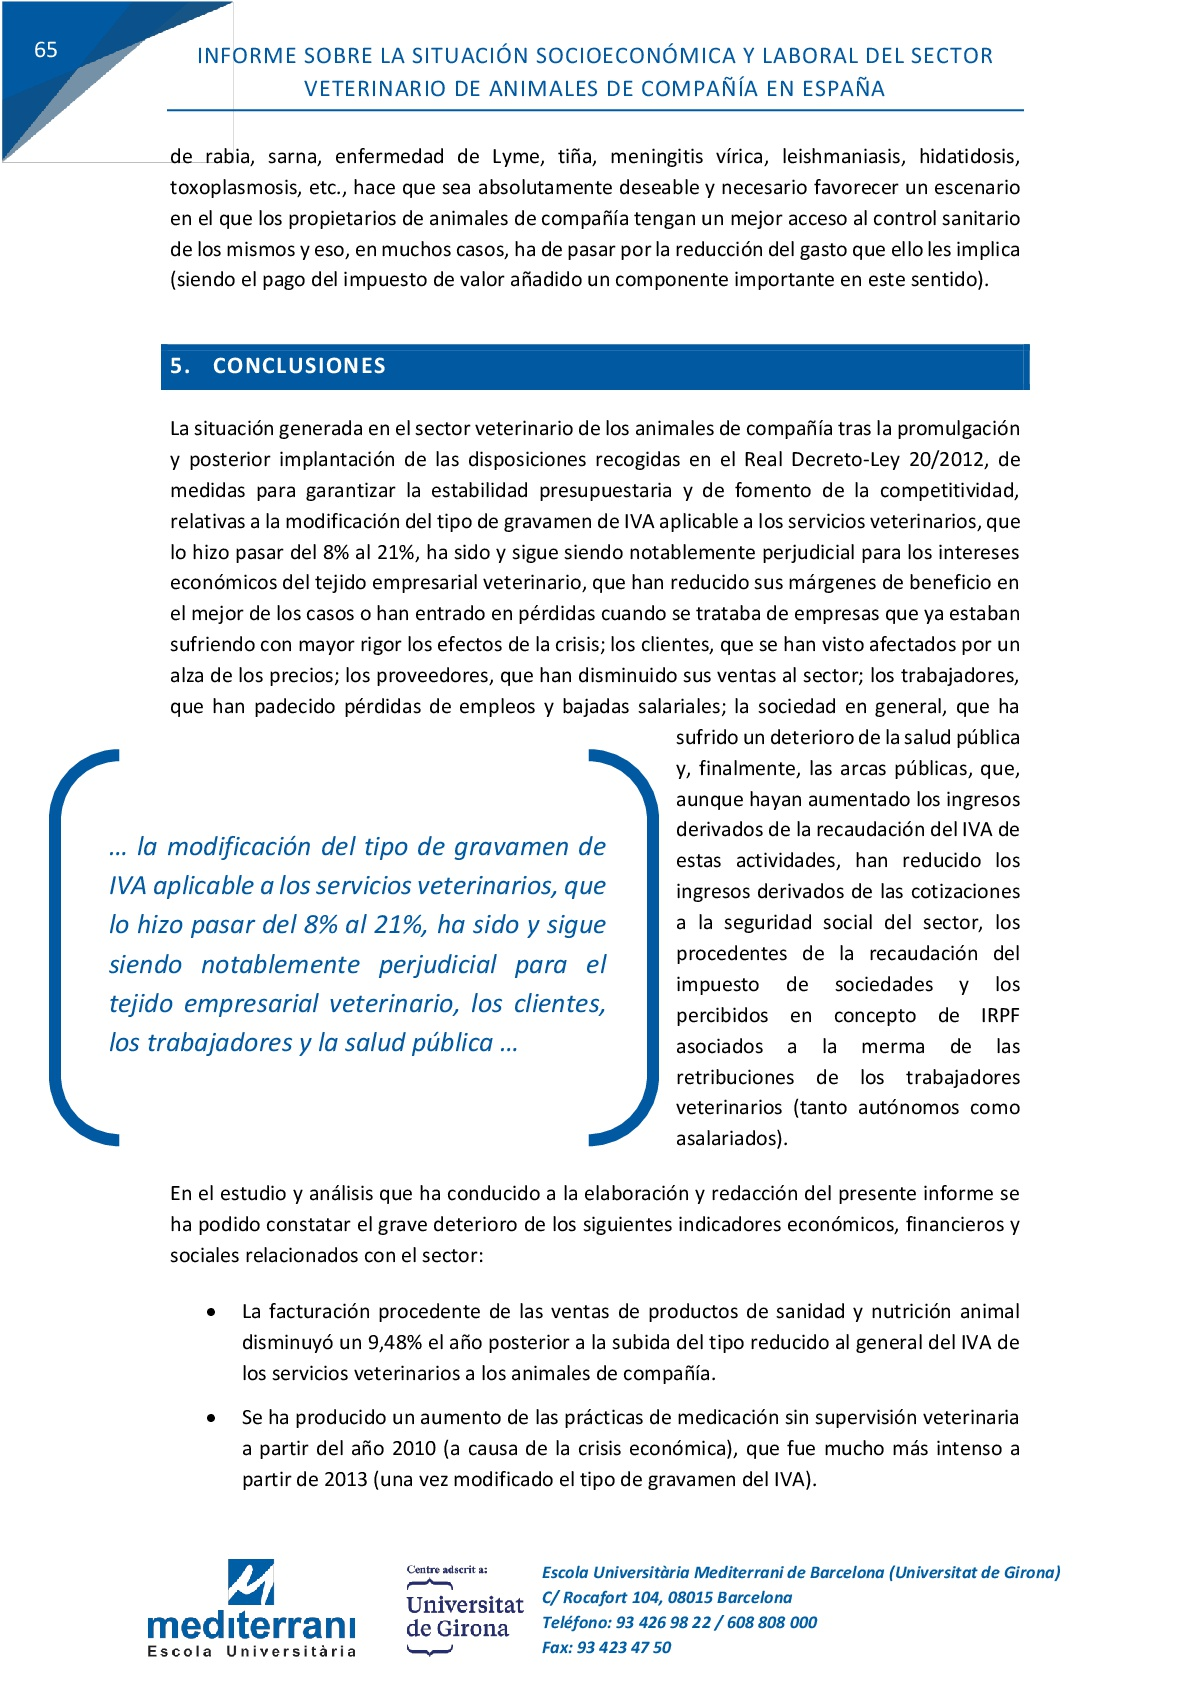 Informe-Veterinario-2017-+-informe-legal-2015-(3)-070